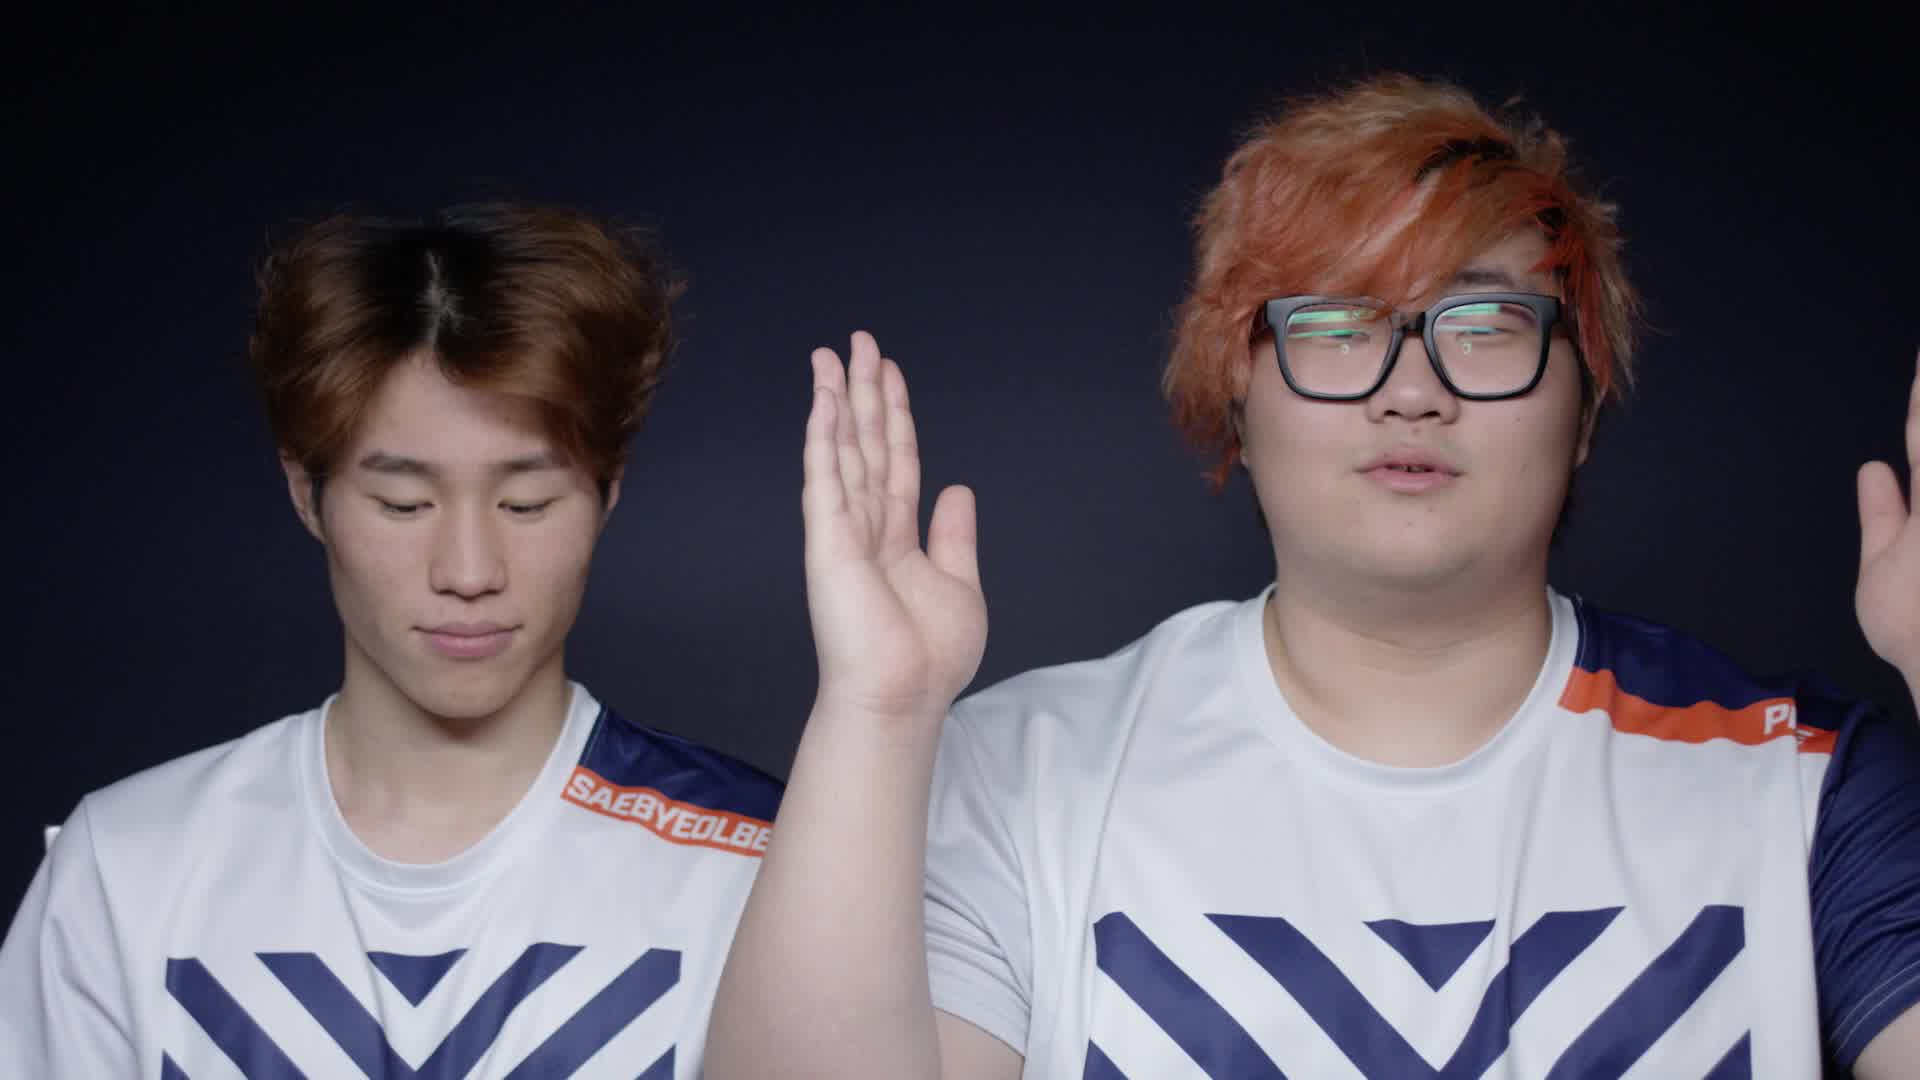 NY Excelsior's Saebyolbe & Pine